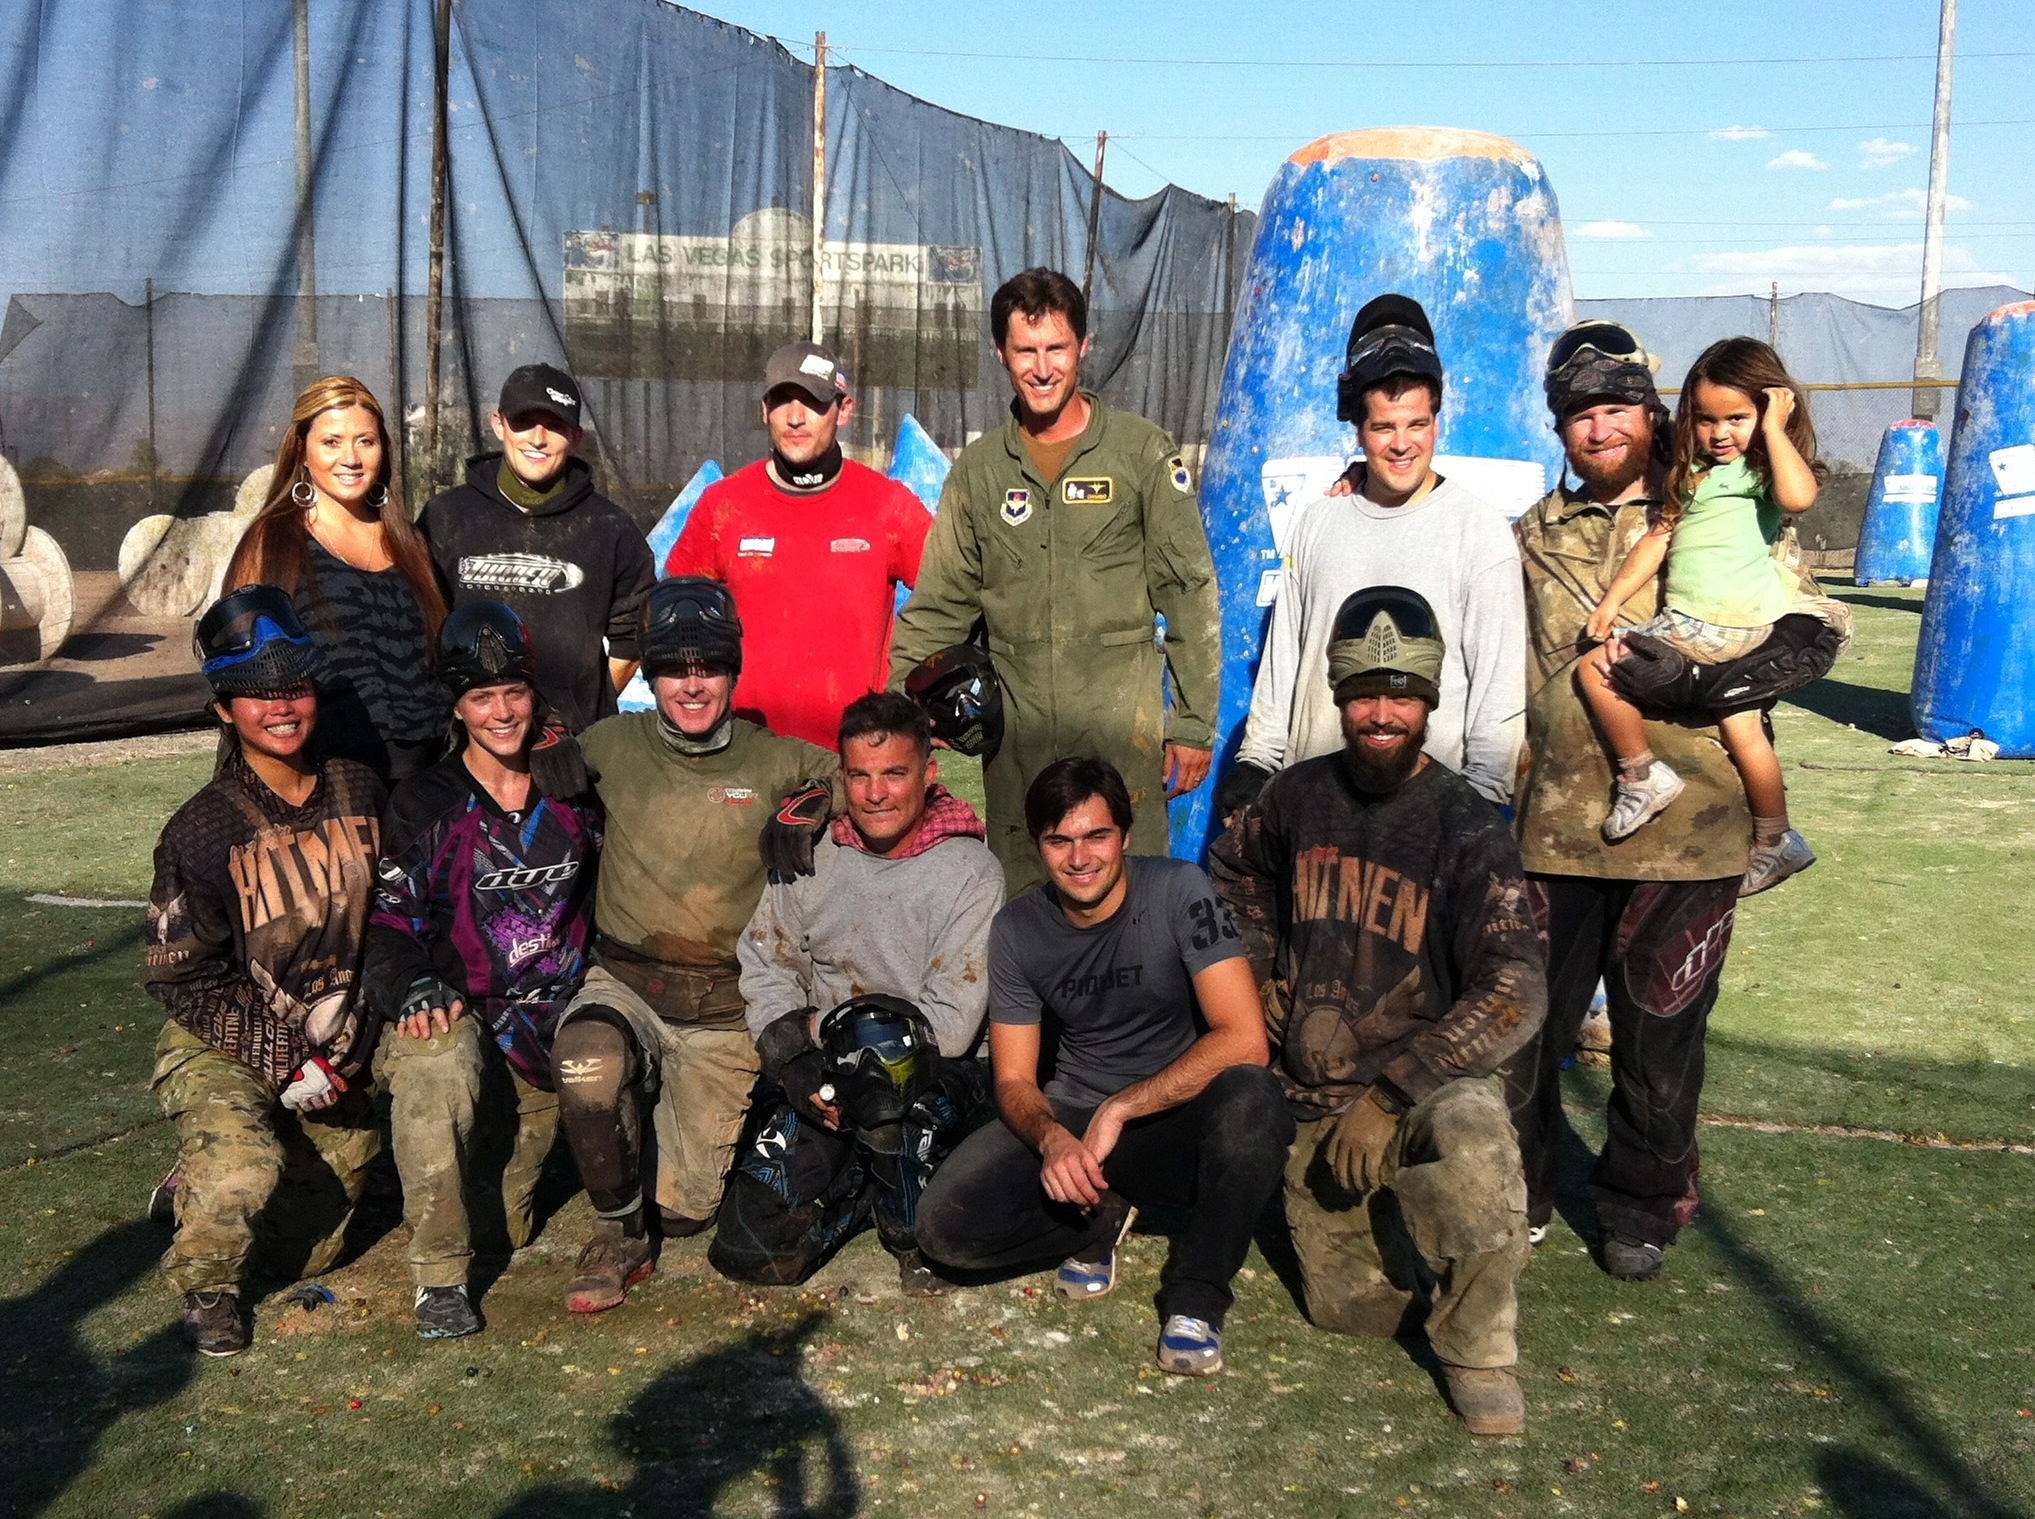 Recent NASCAR Camping World Truck Series Winner, Nelson Piquet, Jr, Plays Paintball with Greg Hastings & Friends